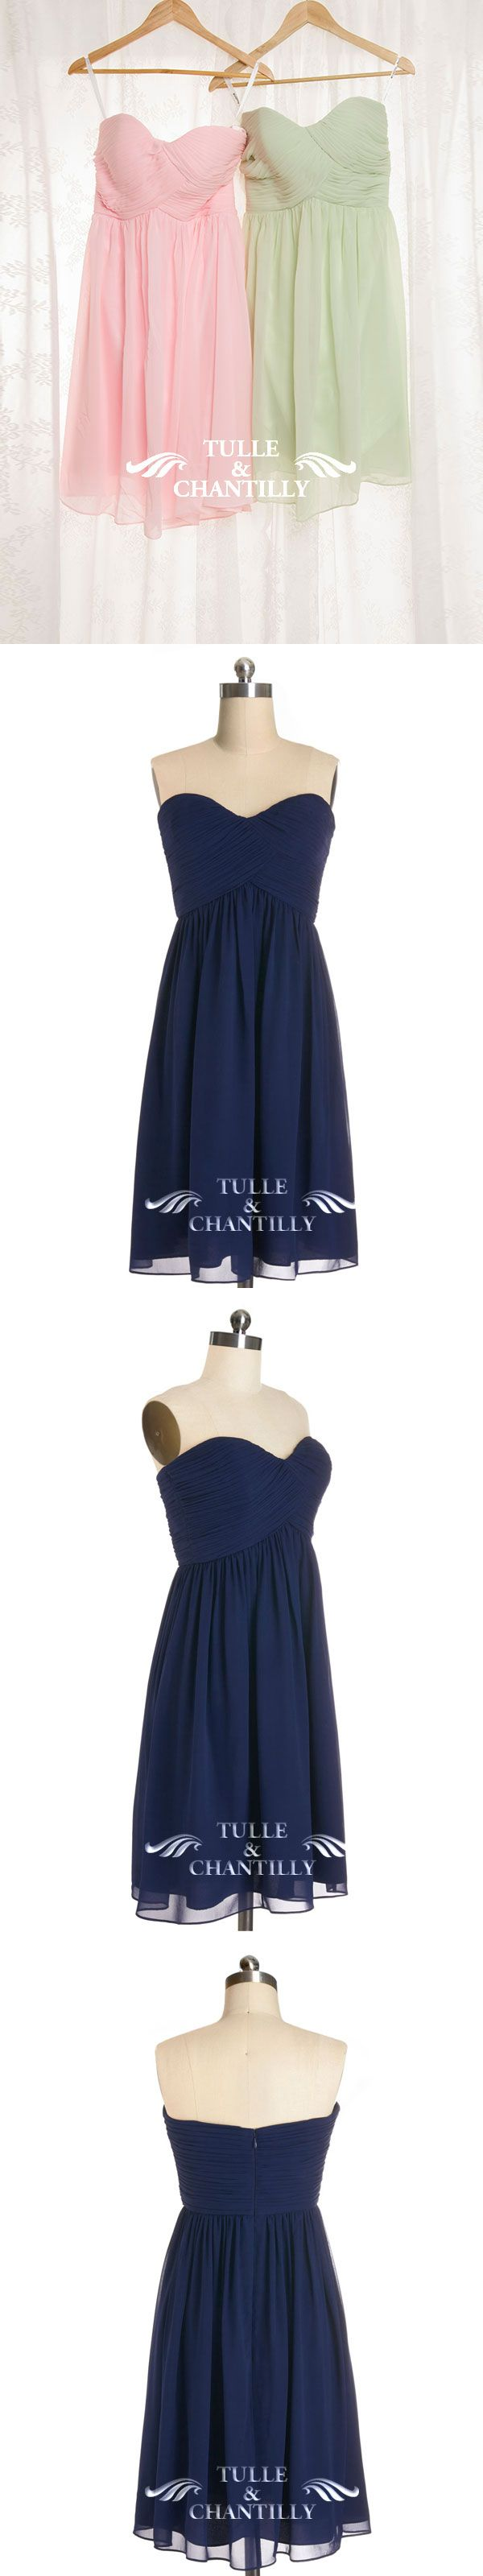 indigo wedding color ideas - short chiffon sweetheart bridesmaid dress in pink, sage and indigo - see more at: http://www.tulleandchantilly.com/cute-short-indigo-sweetheart-chiffon-bridesmaid-gown-p-527.html